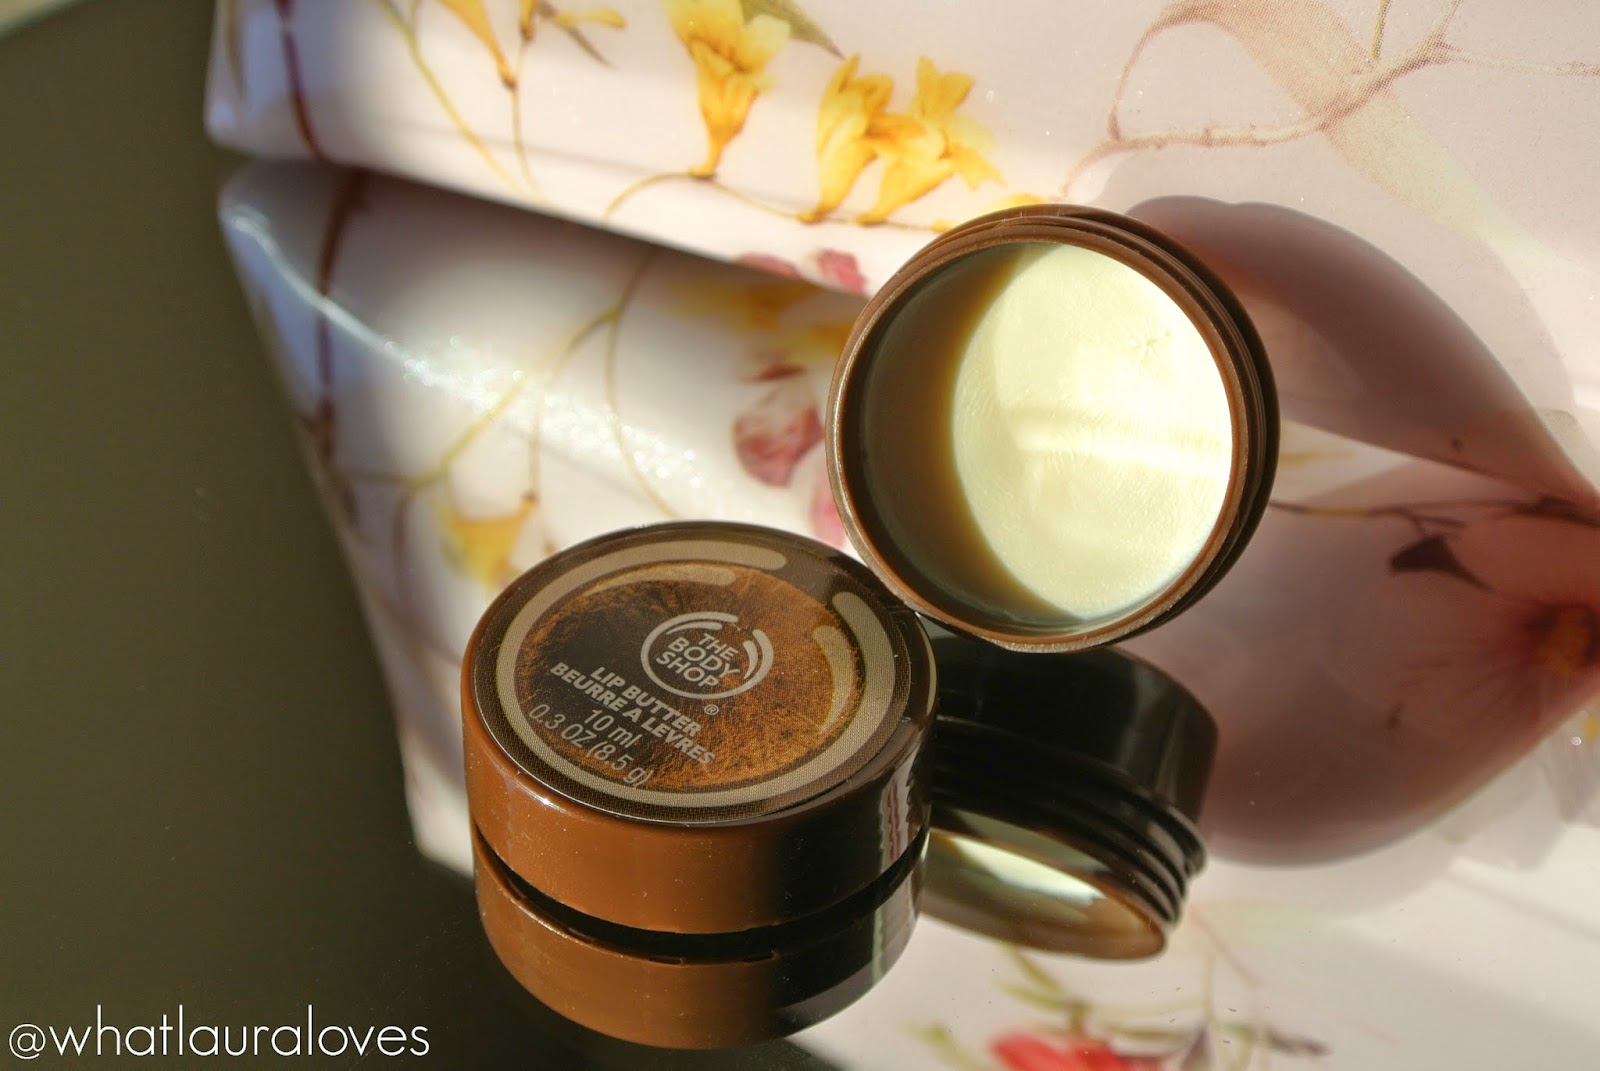 The Body Shop Coconut Range Gift Set Lip Balm